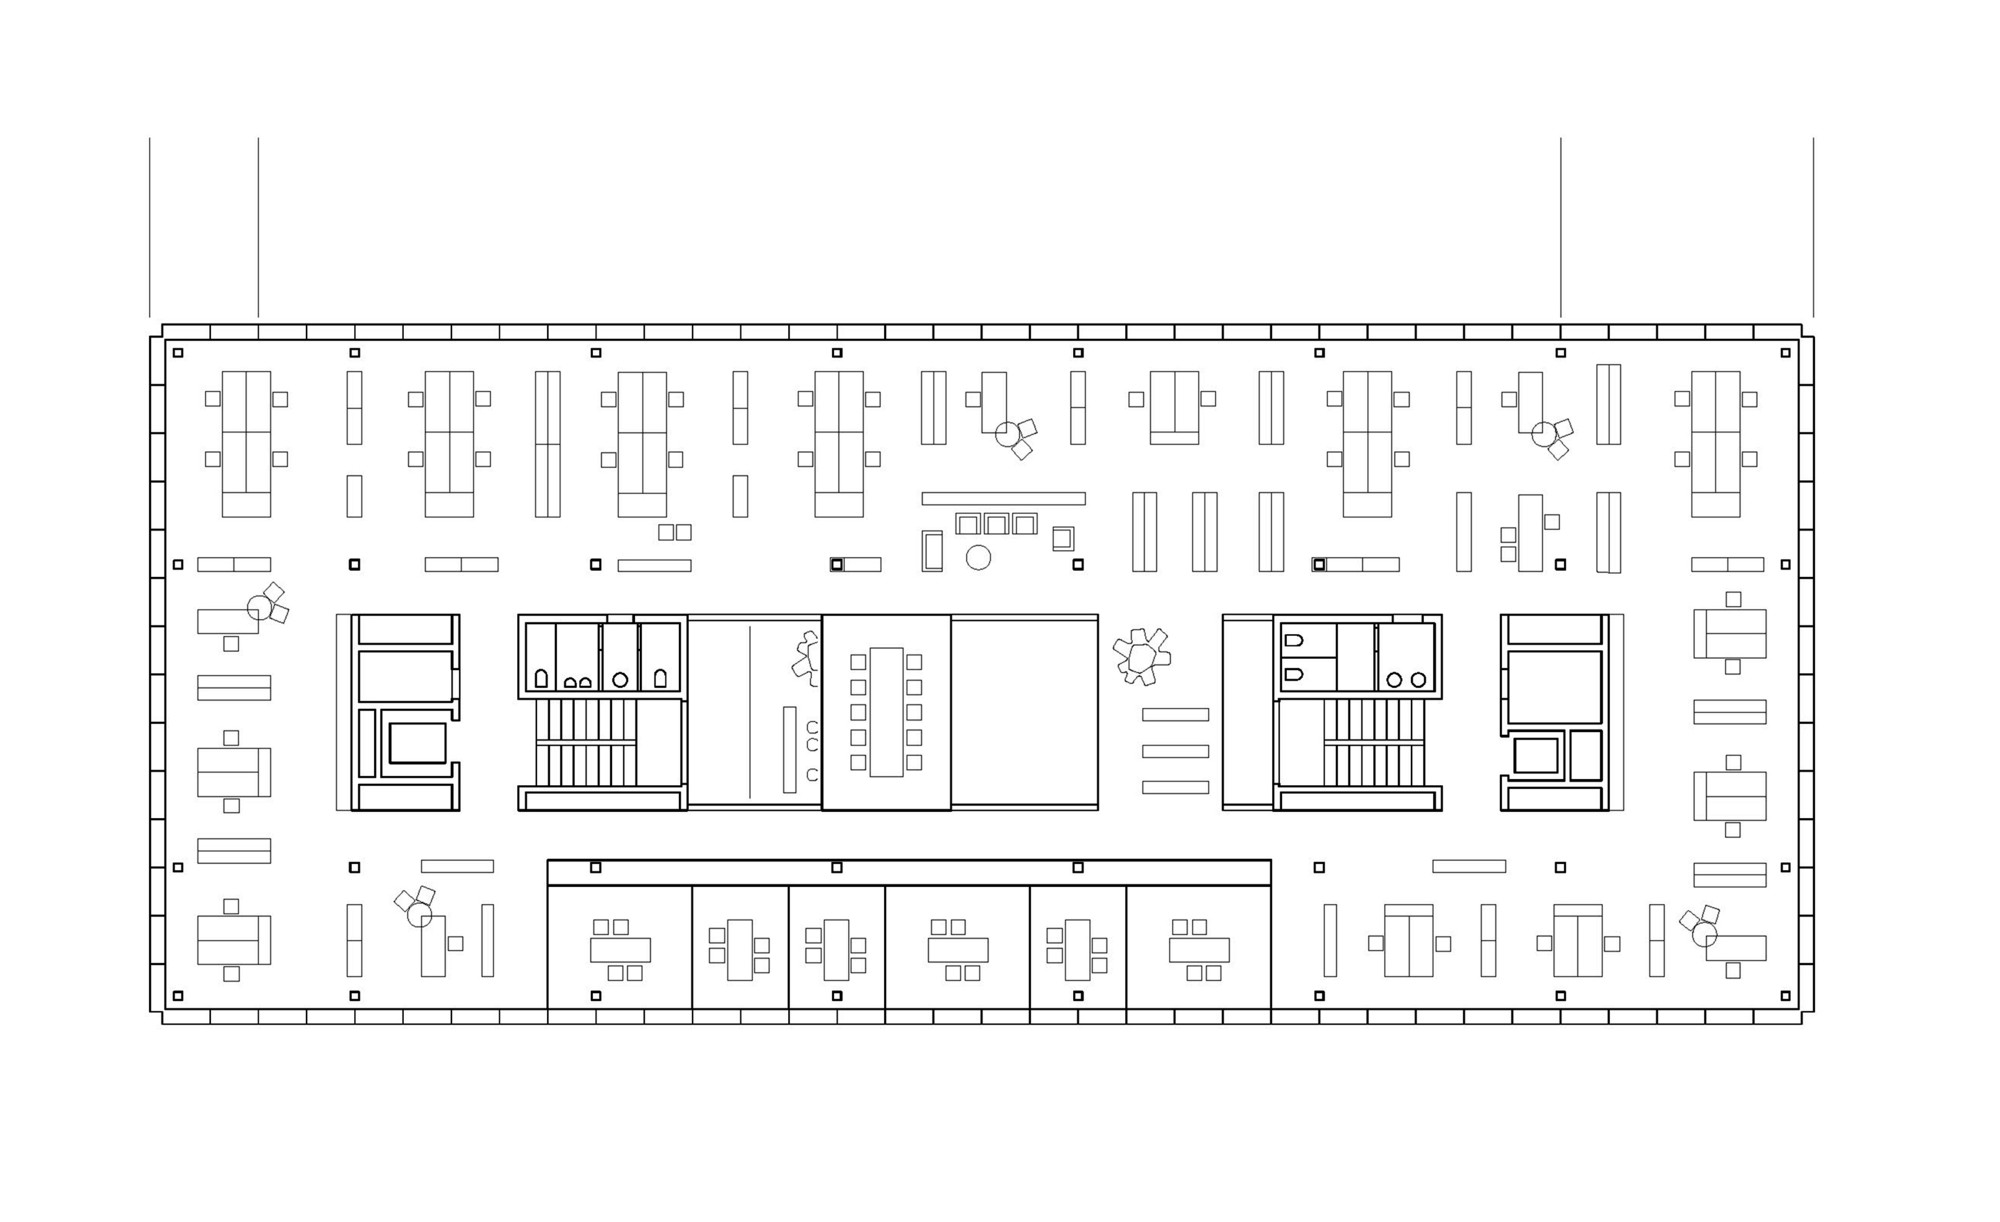 office floor plan - Bodum